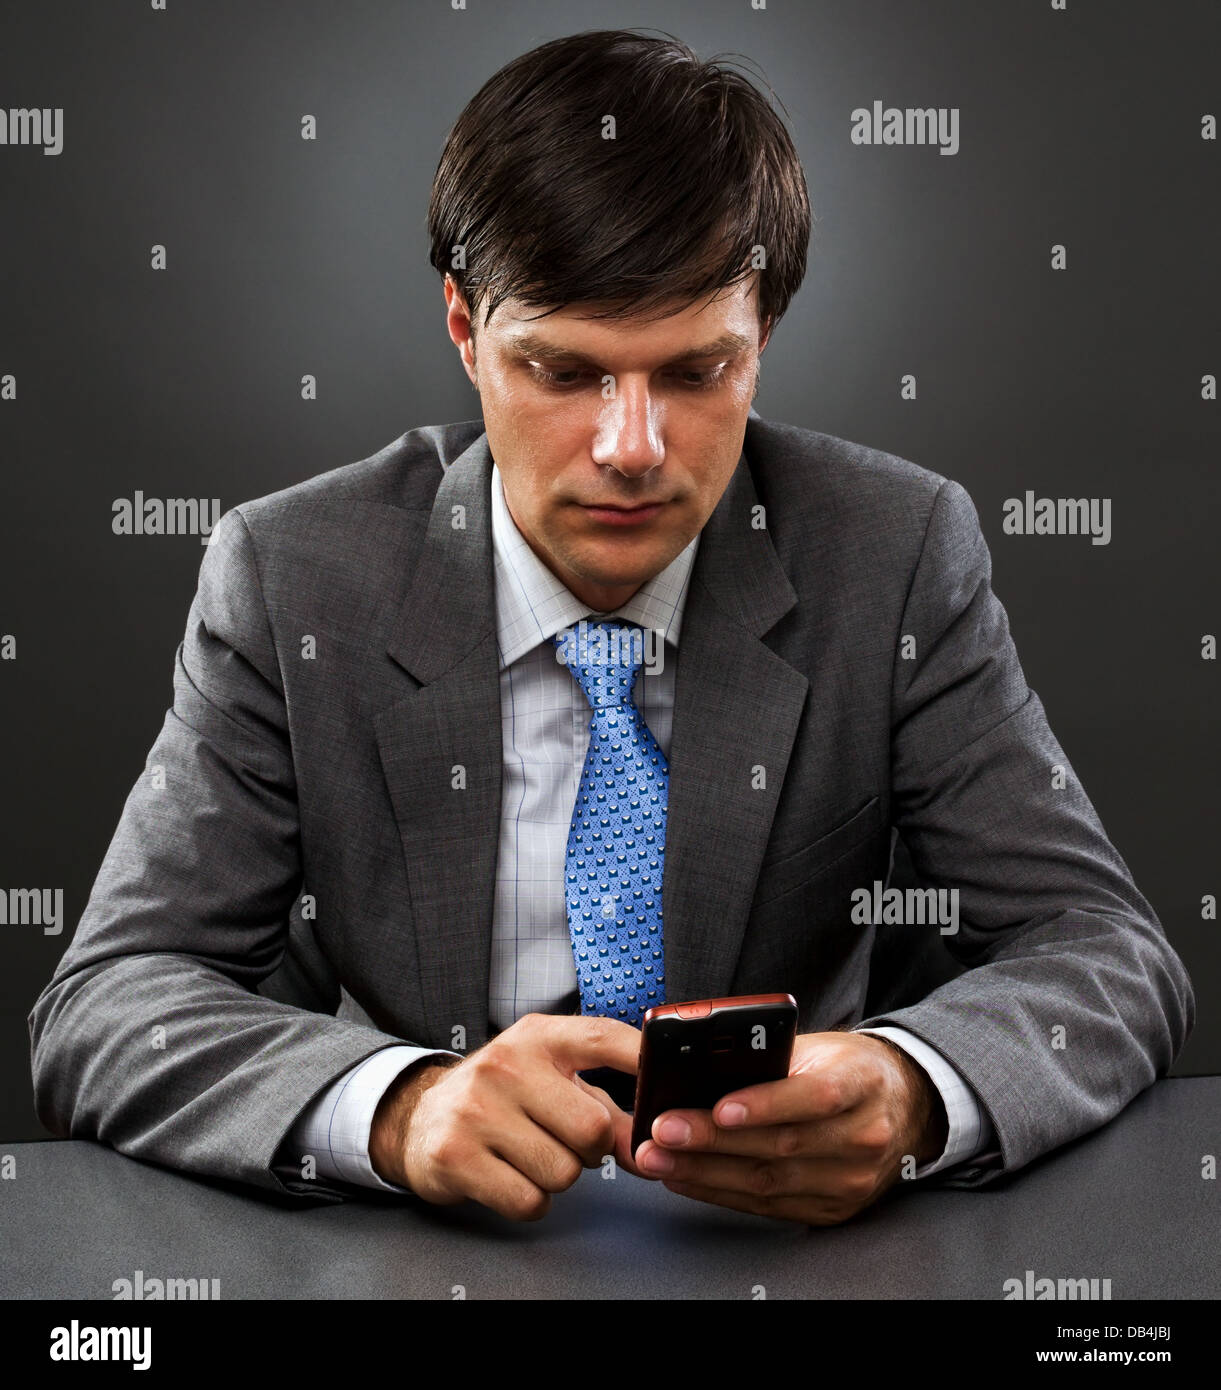 Young businessman sitting behind his desk looking at his mobile phone on gray - Stock Image